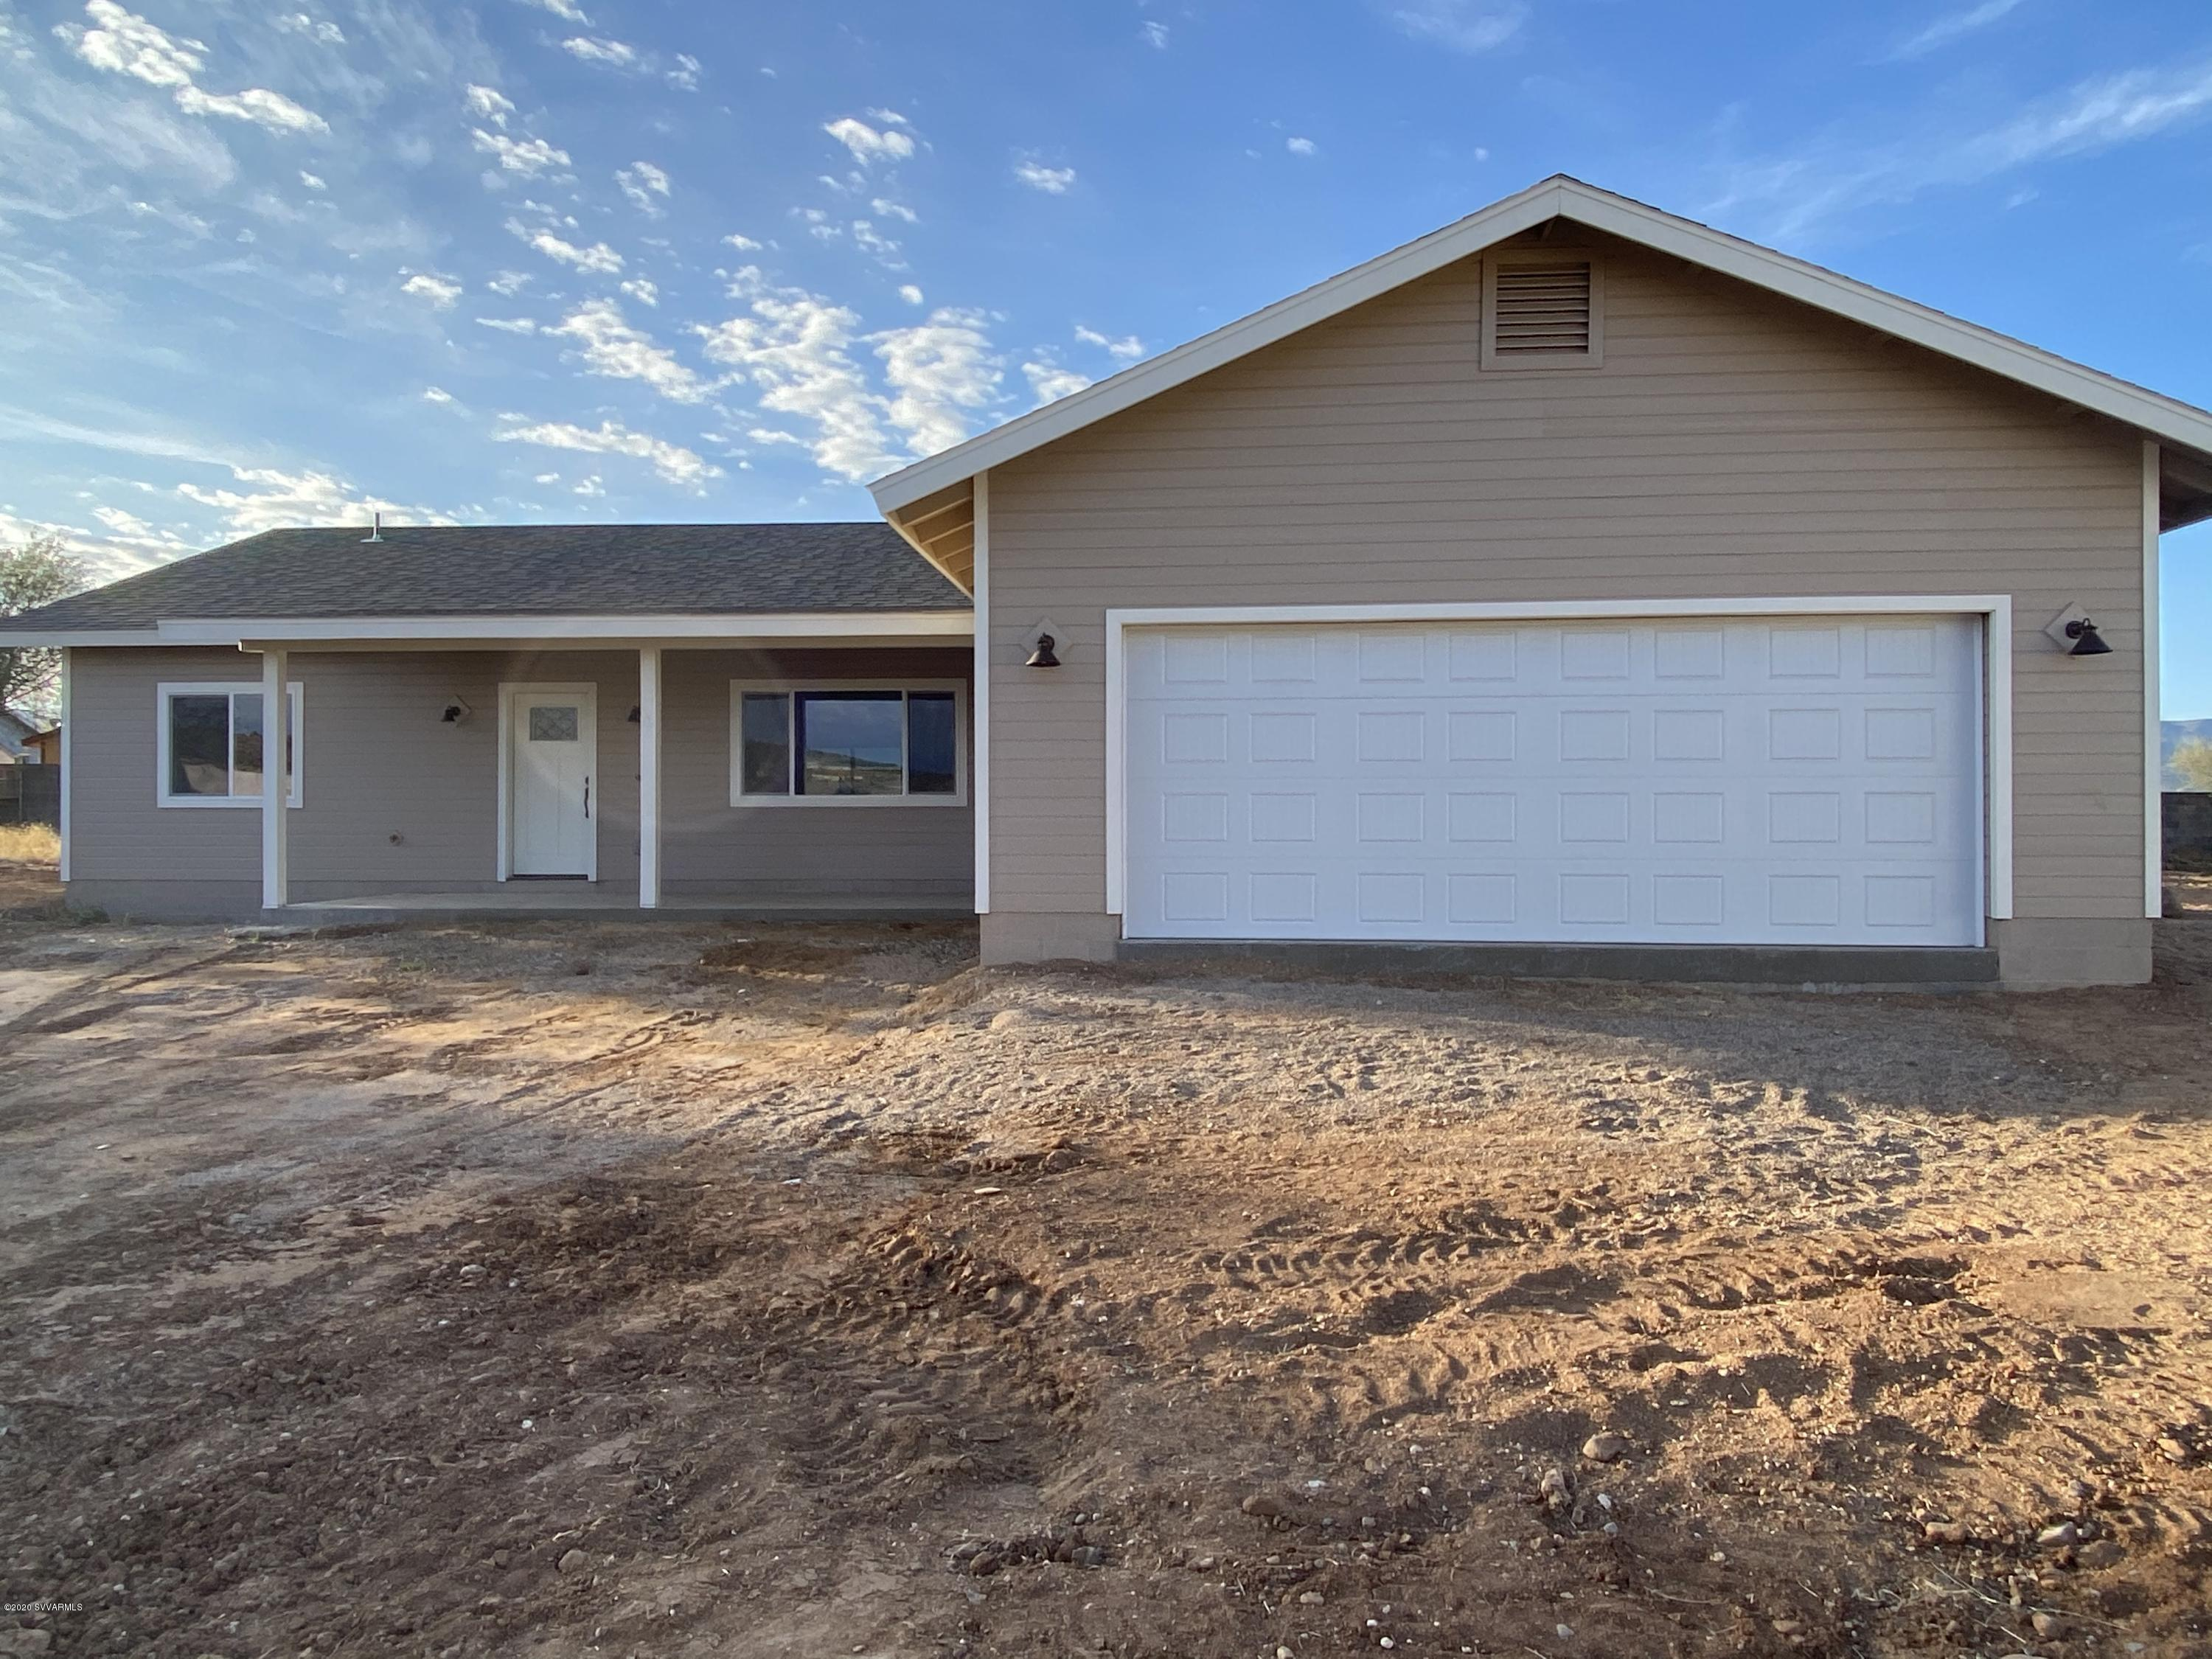 Photo of 4391 E Valley View Rd, Camp Verde, AZ 86322